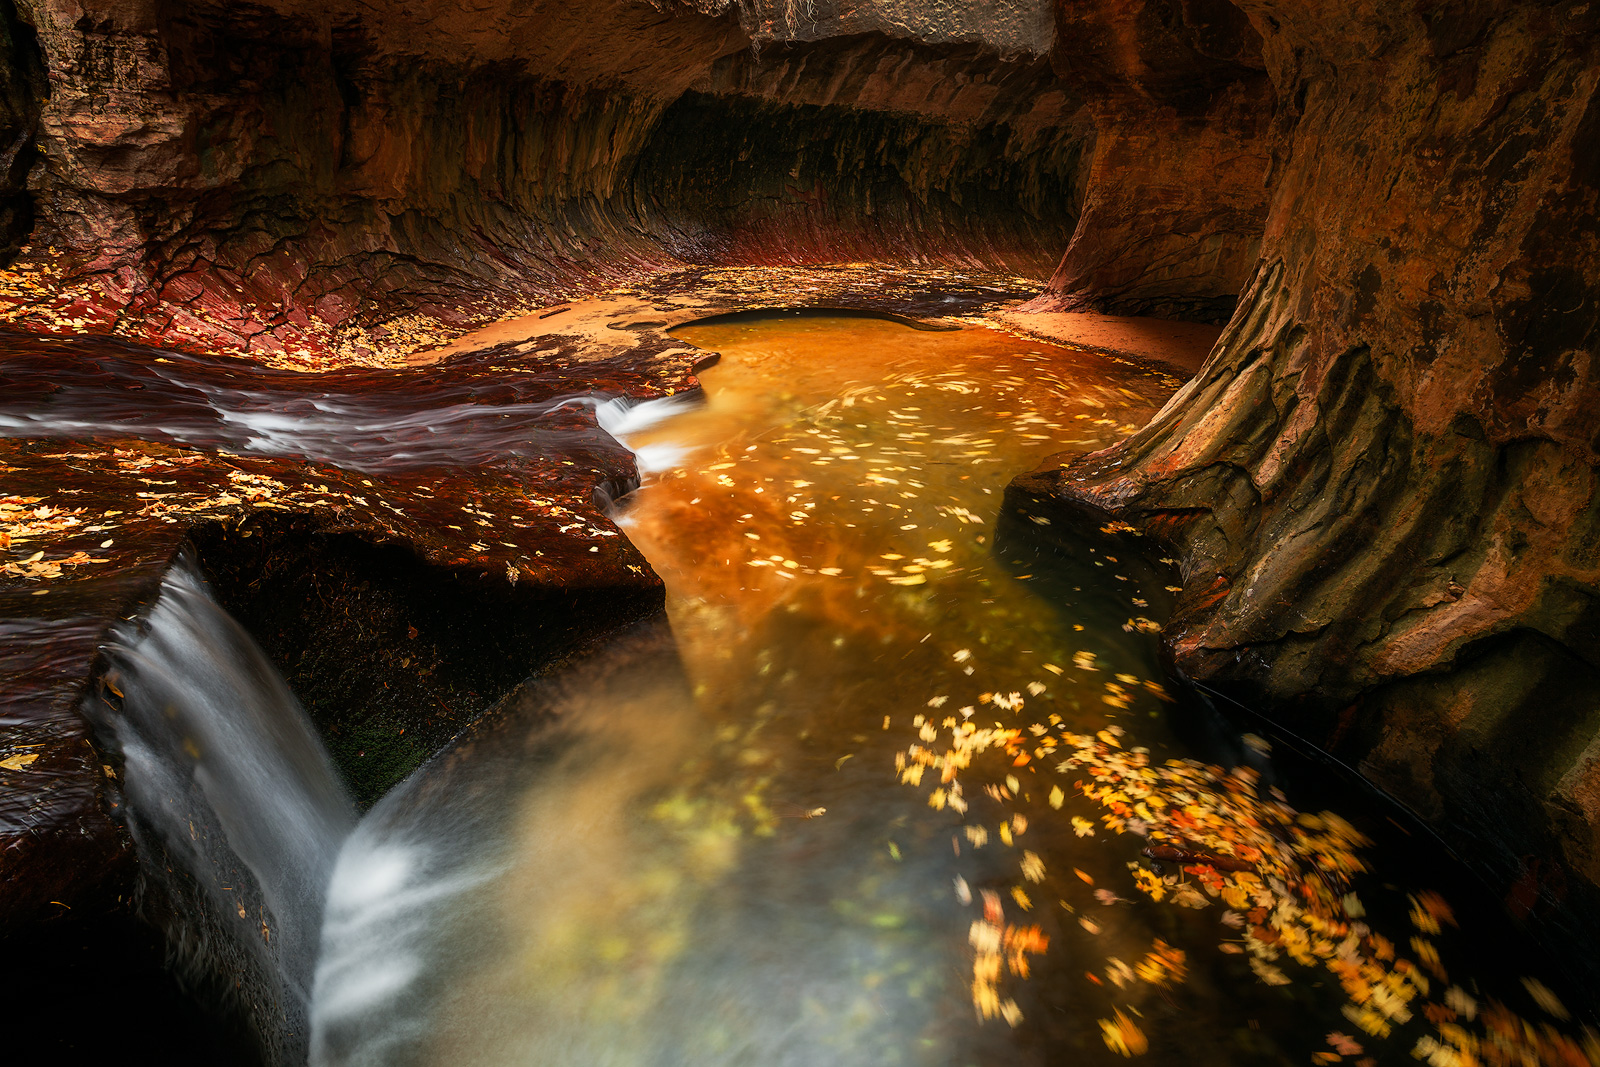 america,autumn,colors,fall,foliage,horizontal,leaf,leaves,left fork,left fork at north creek,left fork of north creek,north america,southwest,subway,swirling,the subway,united states,us,usa,utah,zion , photo